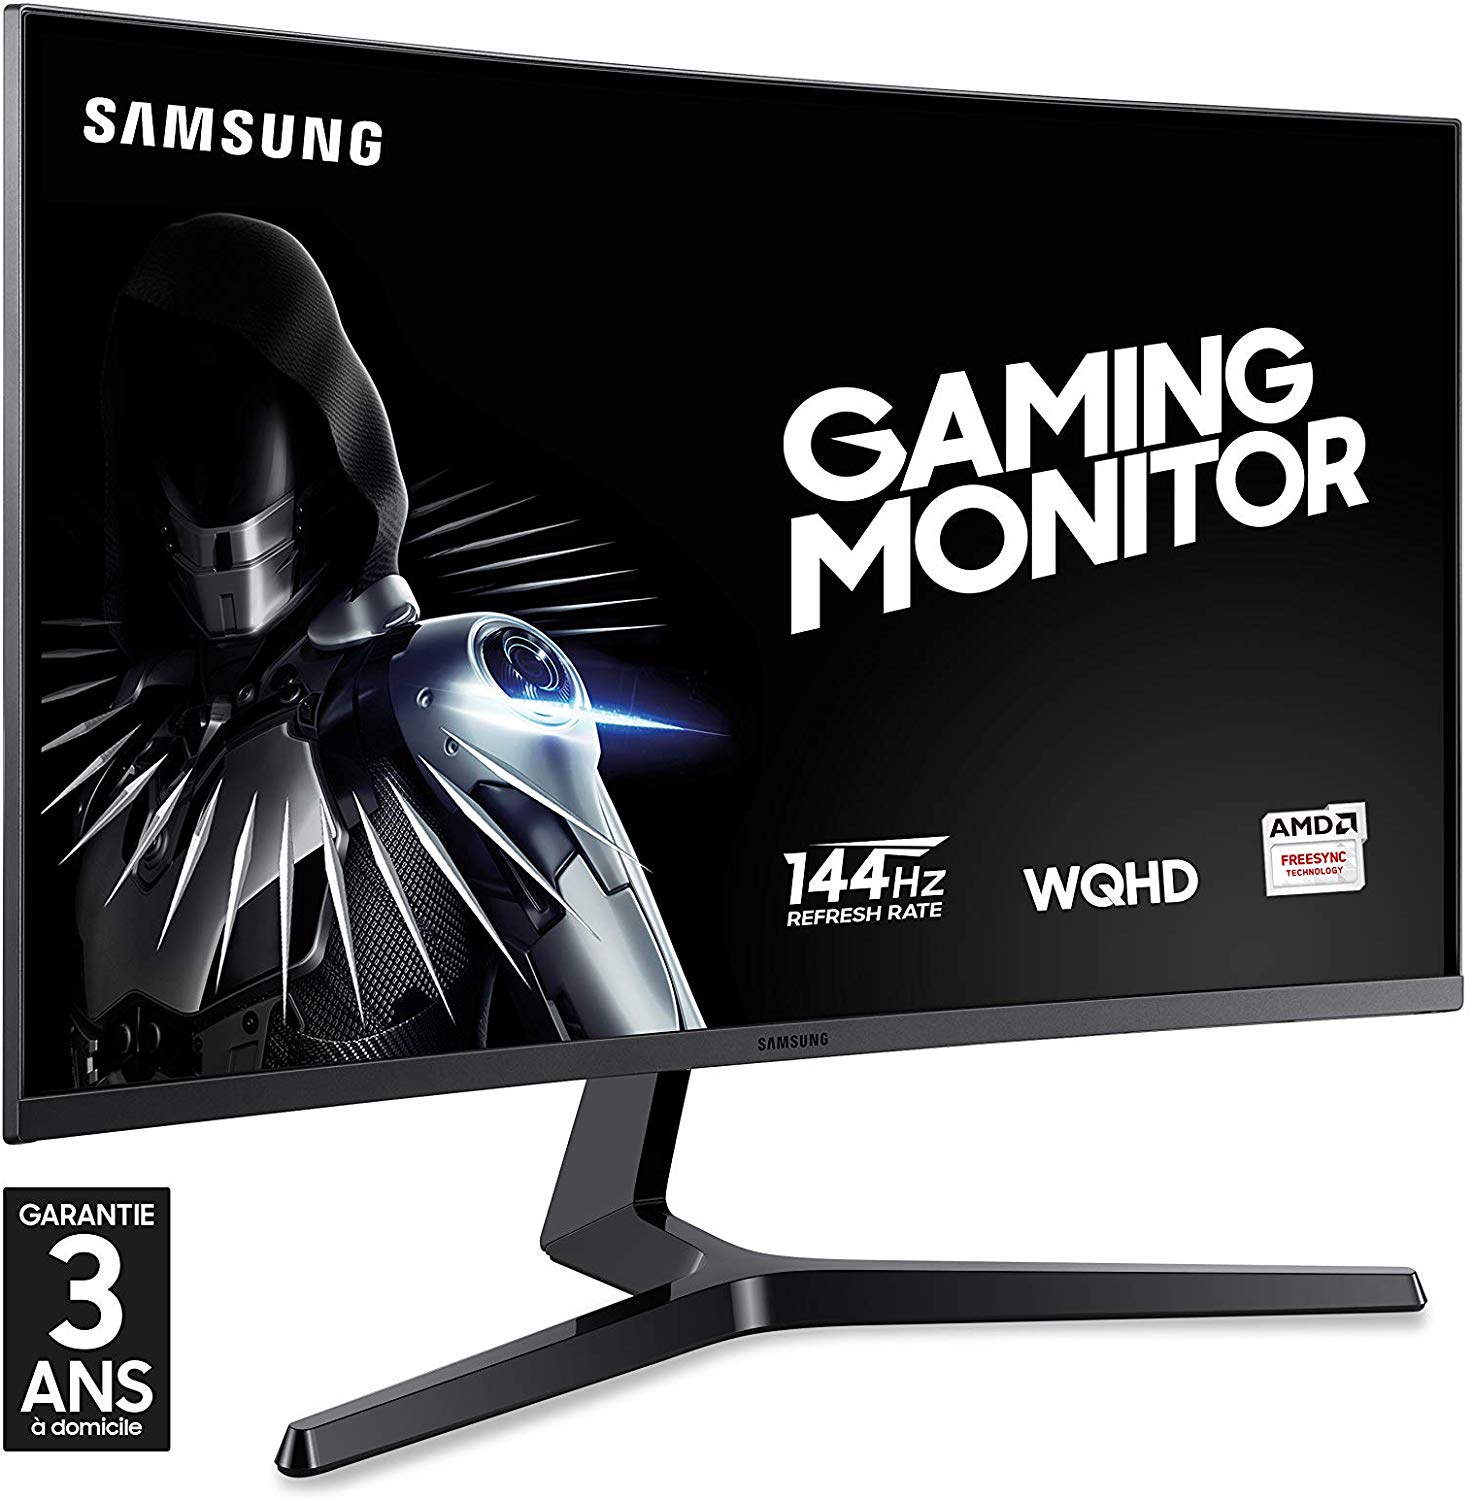 Samsung 27-Inch Curved WQHD 144 Hz LED Gaming Monitor